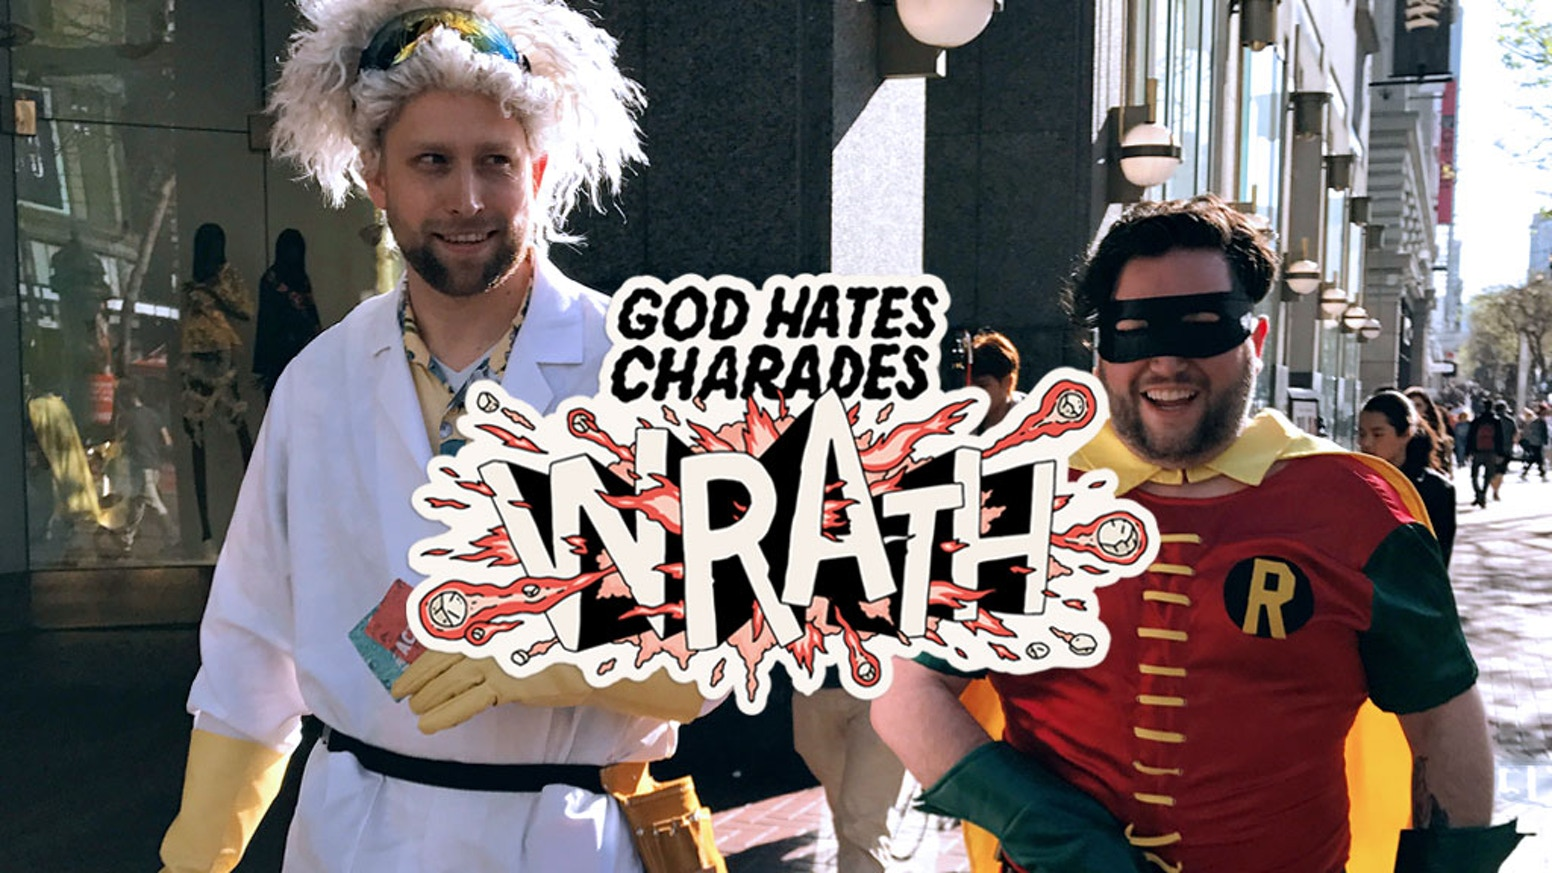 Wrath is the stand-alone sequel to God Hates Charades, a pop culture party game! New jokes. Cheaper Price. Even more hyperbolic. SAD!